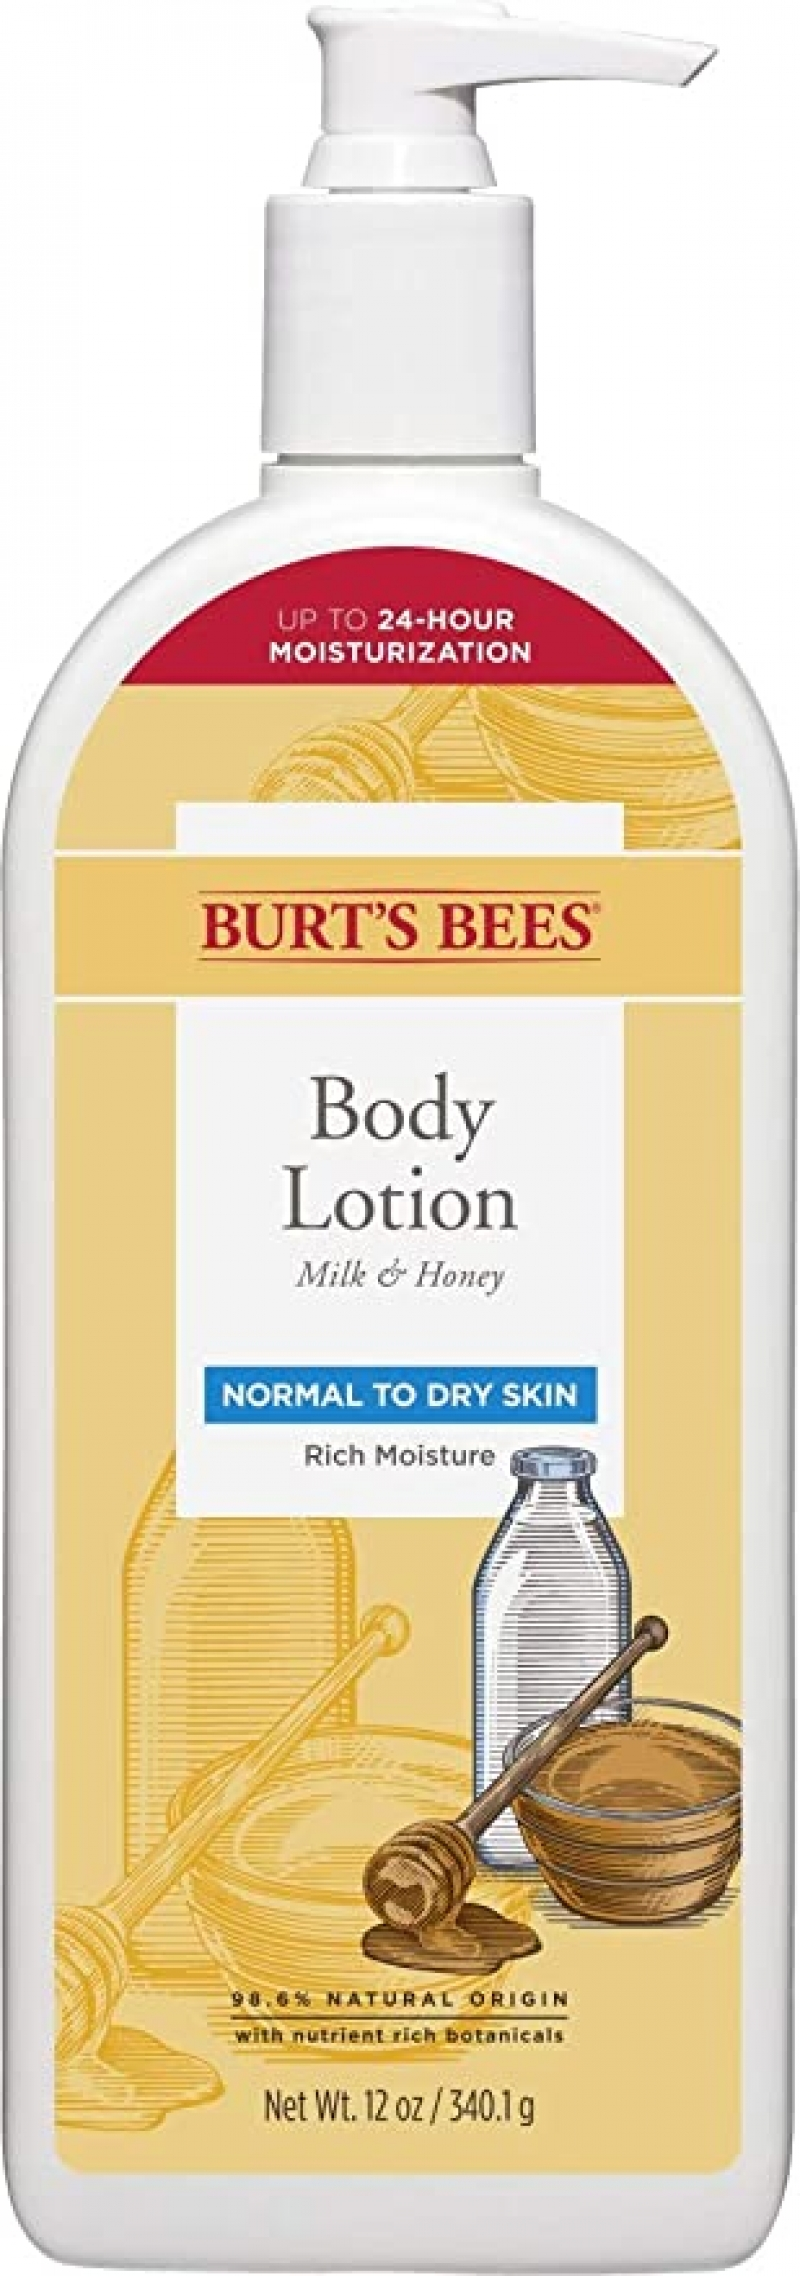 ihocon: Burts Bees Body Lotion for Normal to Dry Skin with Milk & Honey, 12 Oz 牛奶蜂蜜身體乳